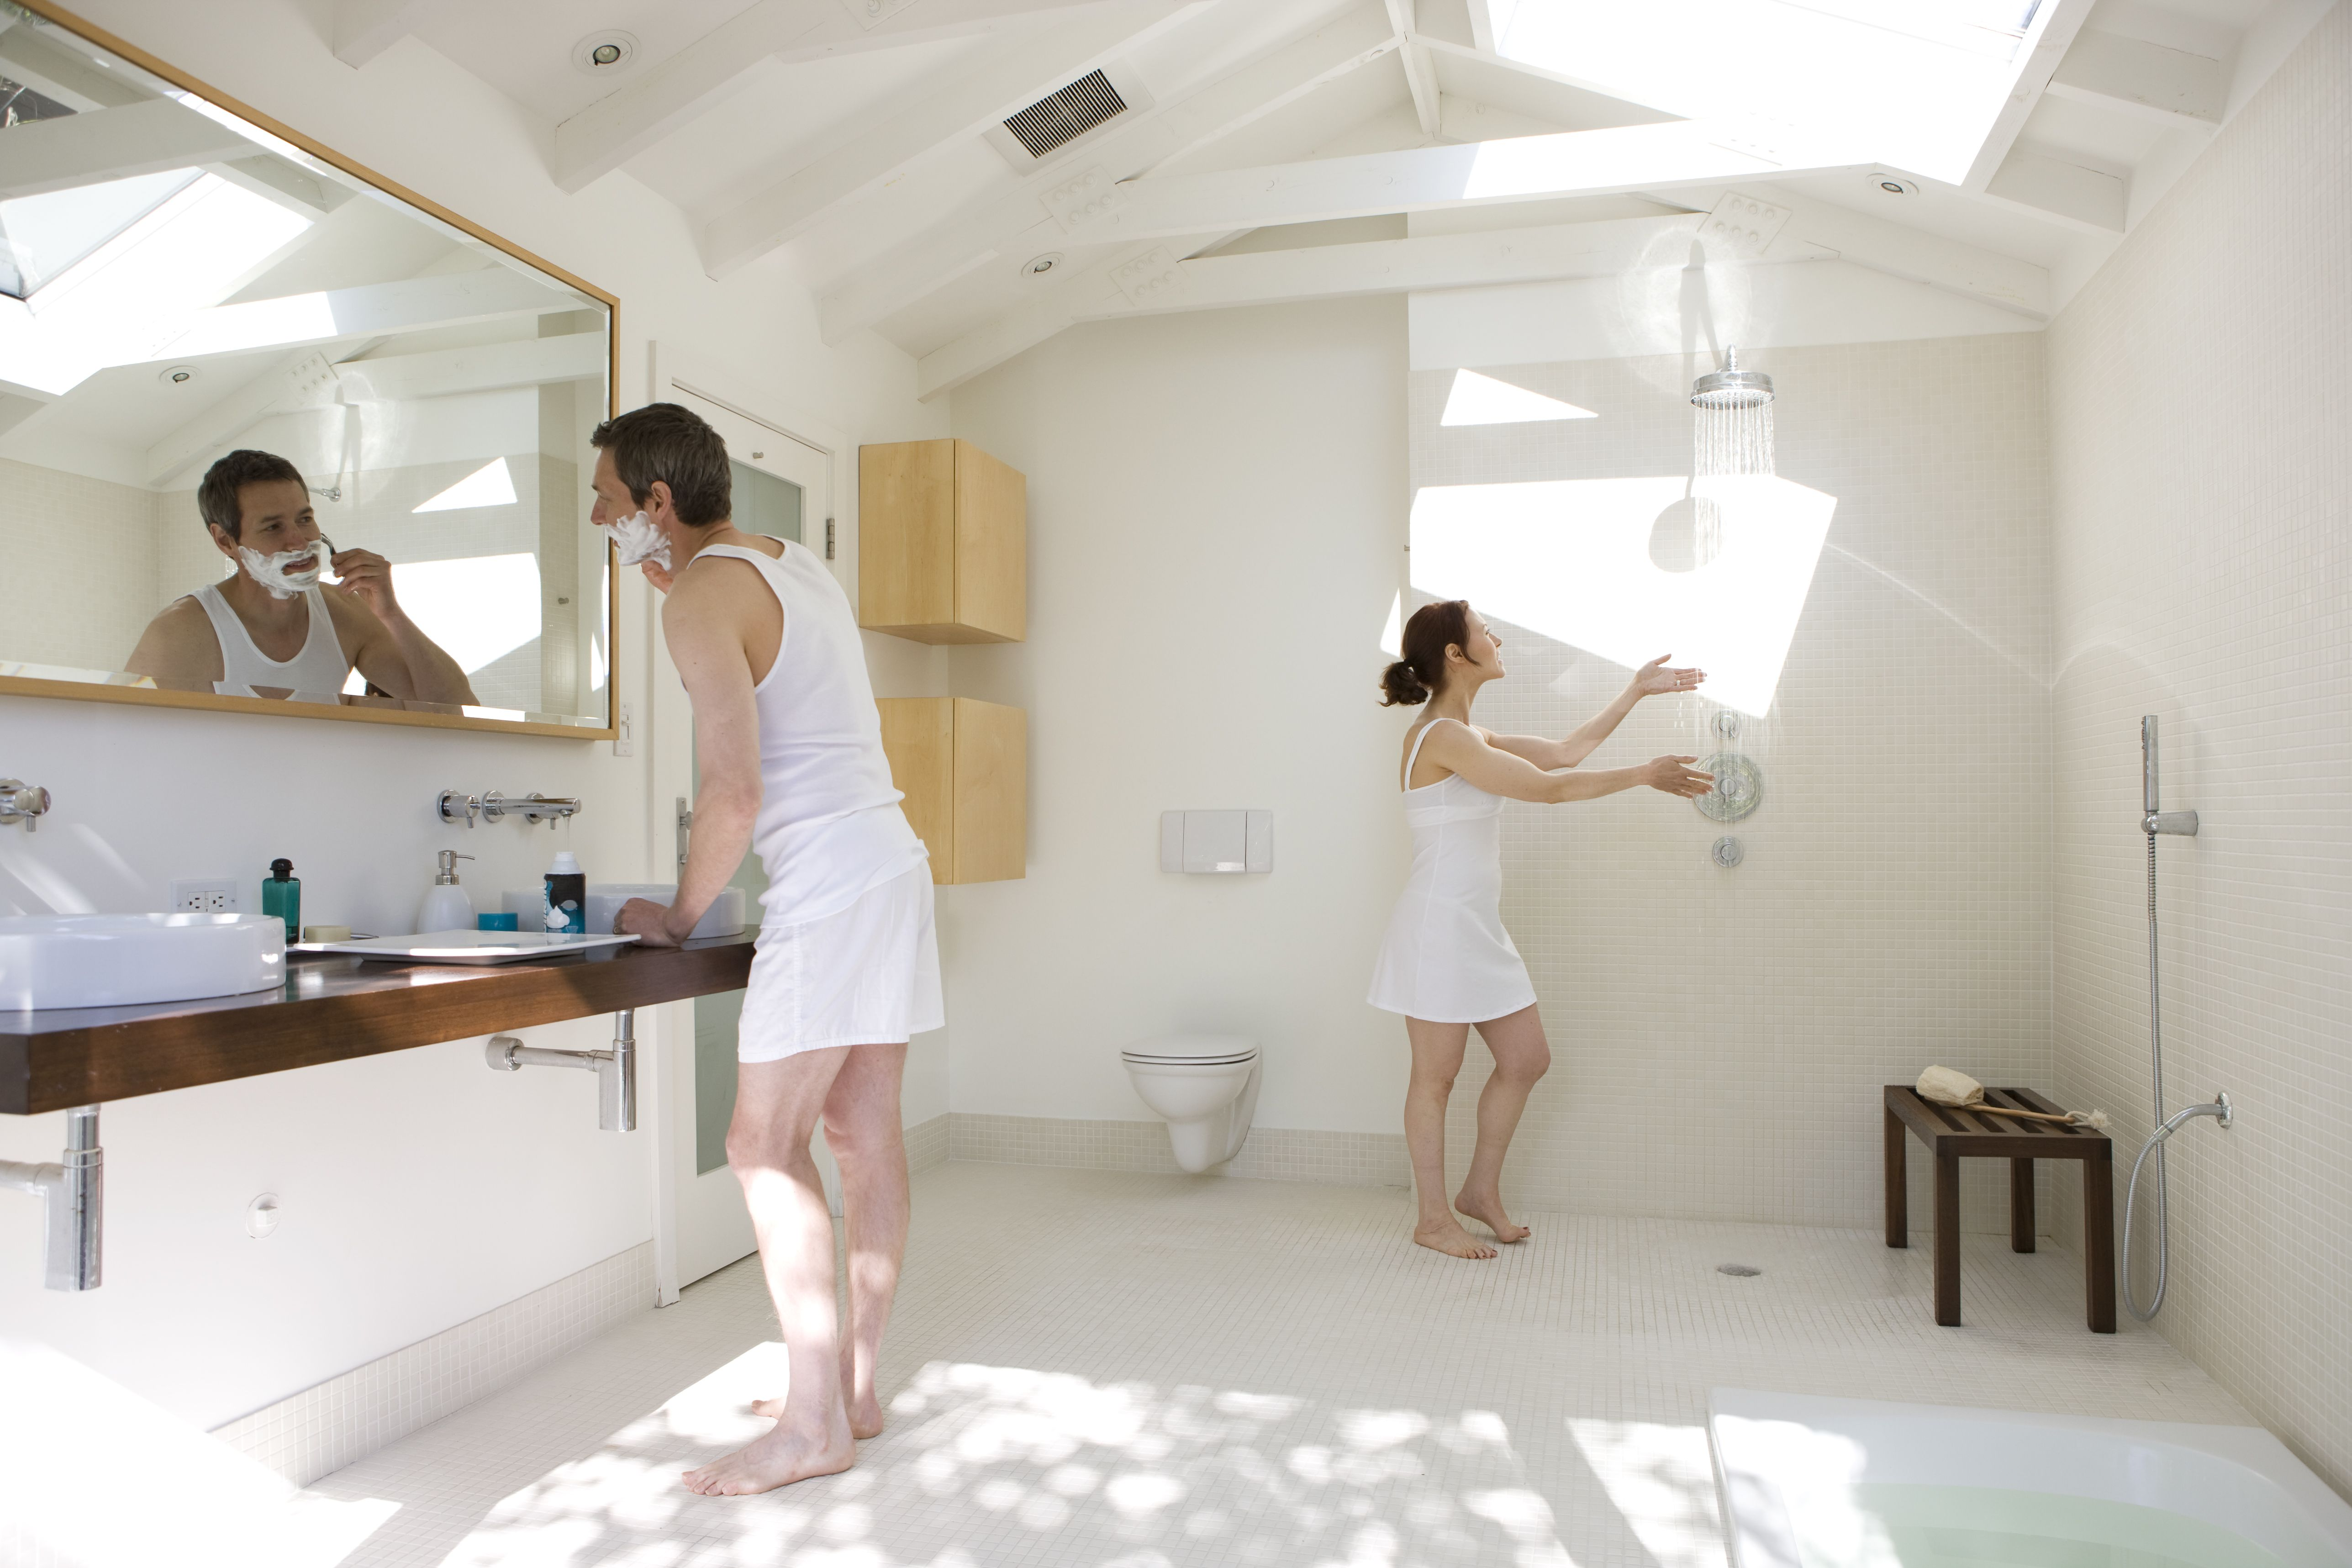 His And Hers Bathrooms Are Ridiculous